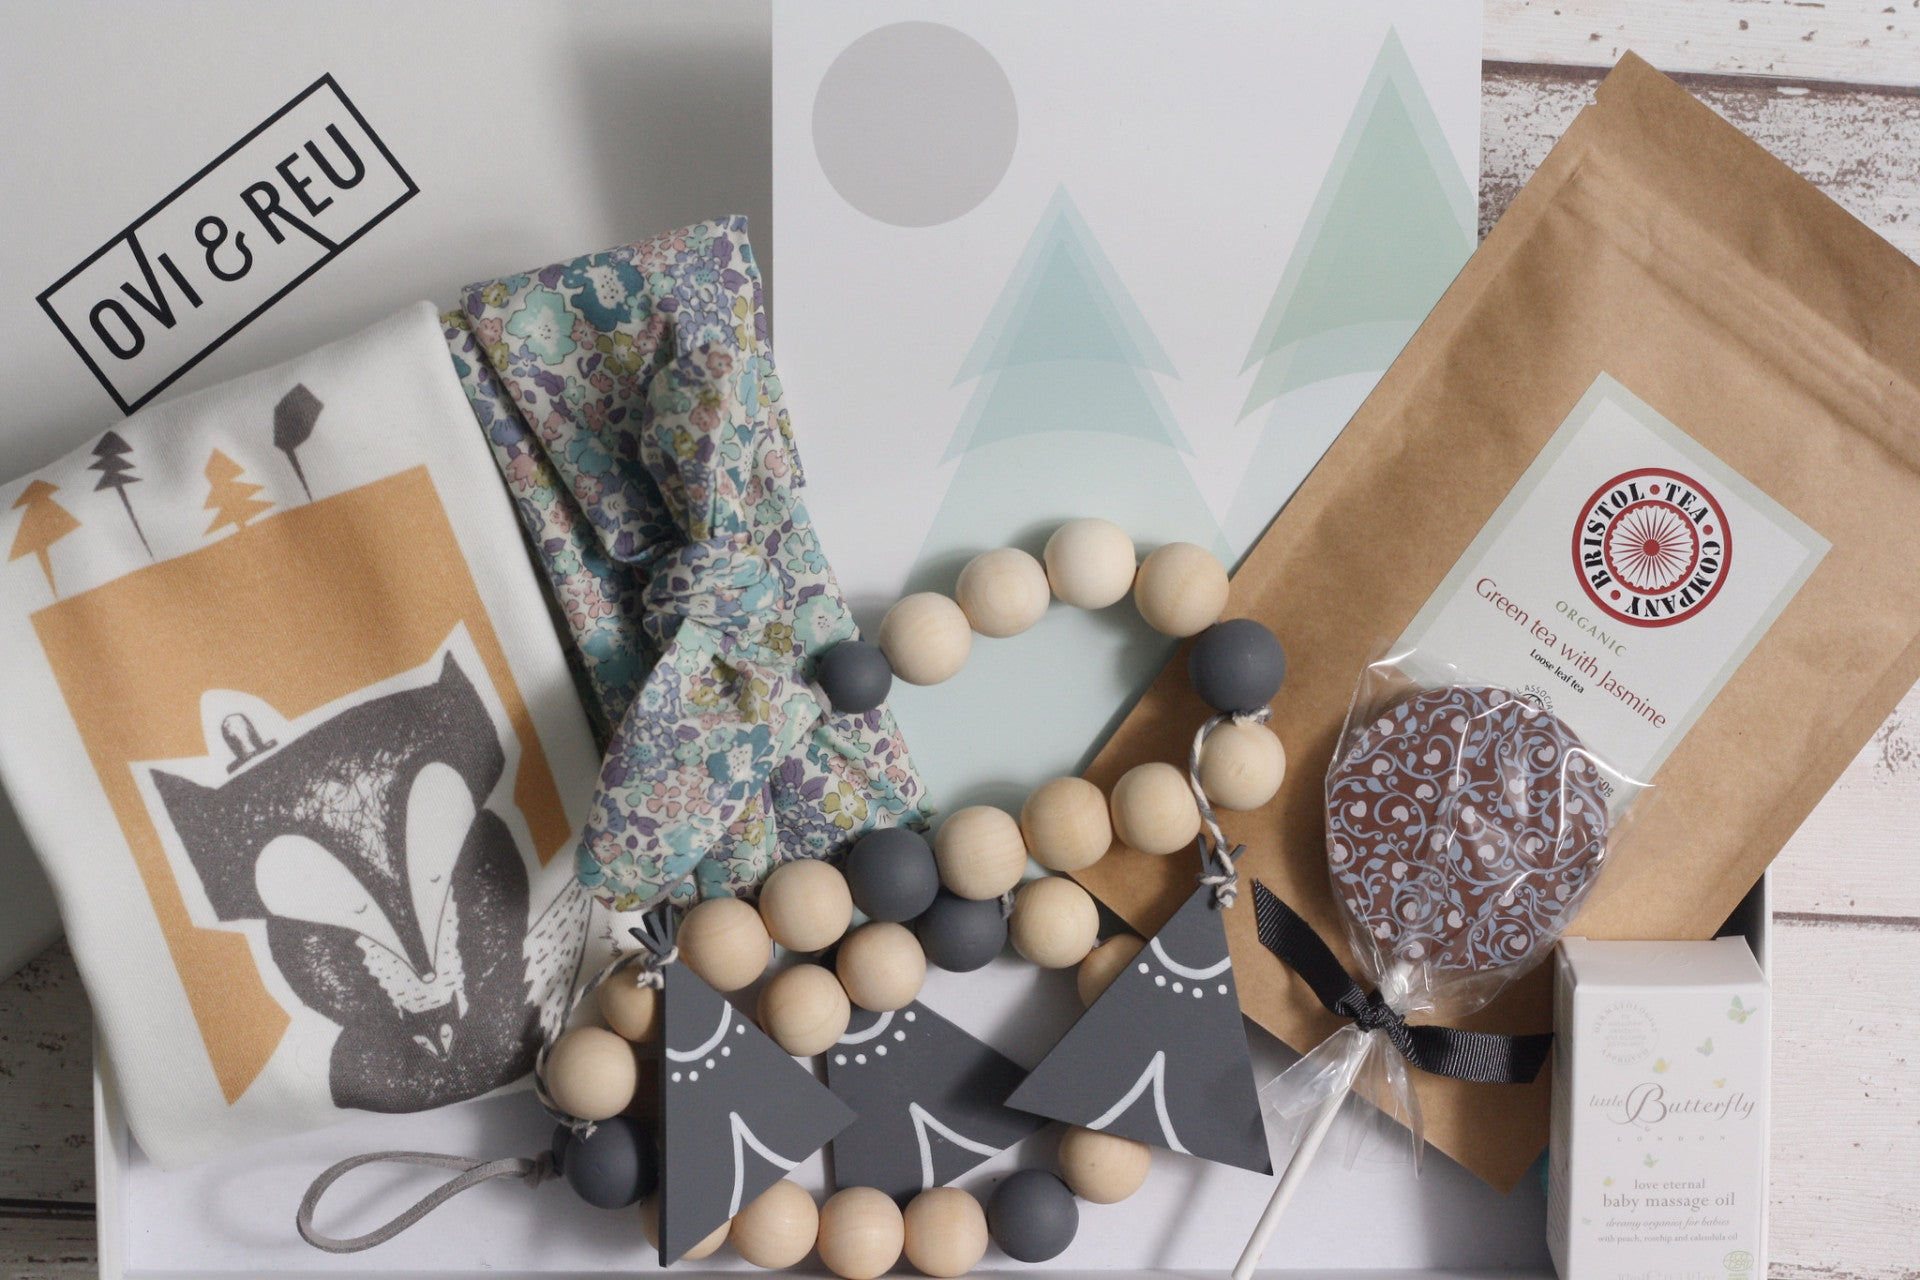 The Ovi and Reu Country Collection gift box for new mums and babies. Available from Wonder of Kin - Curating Independent Brands.